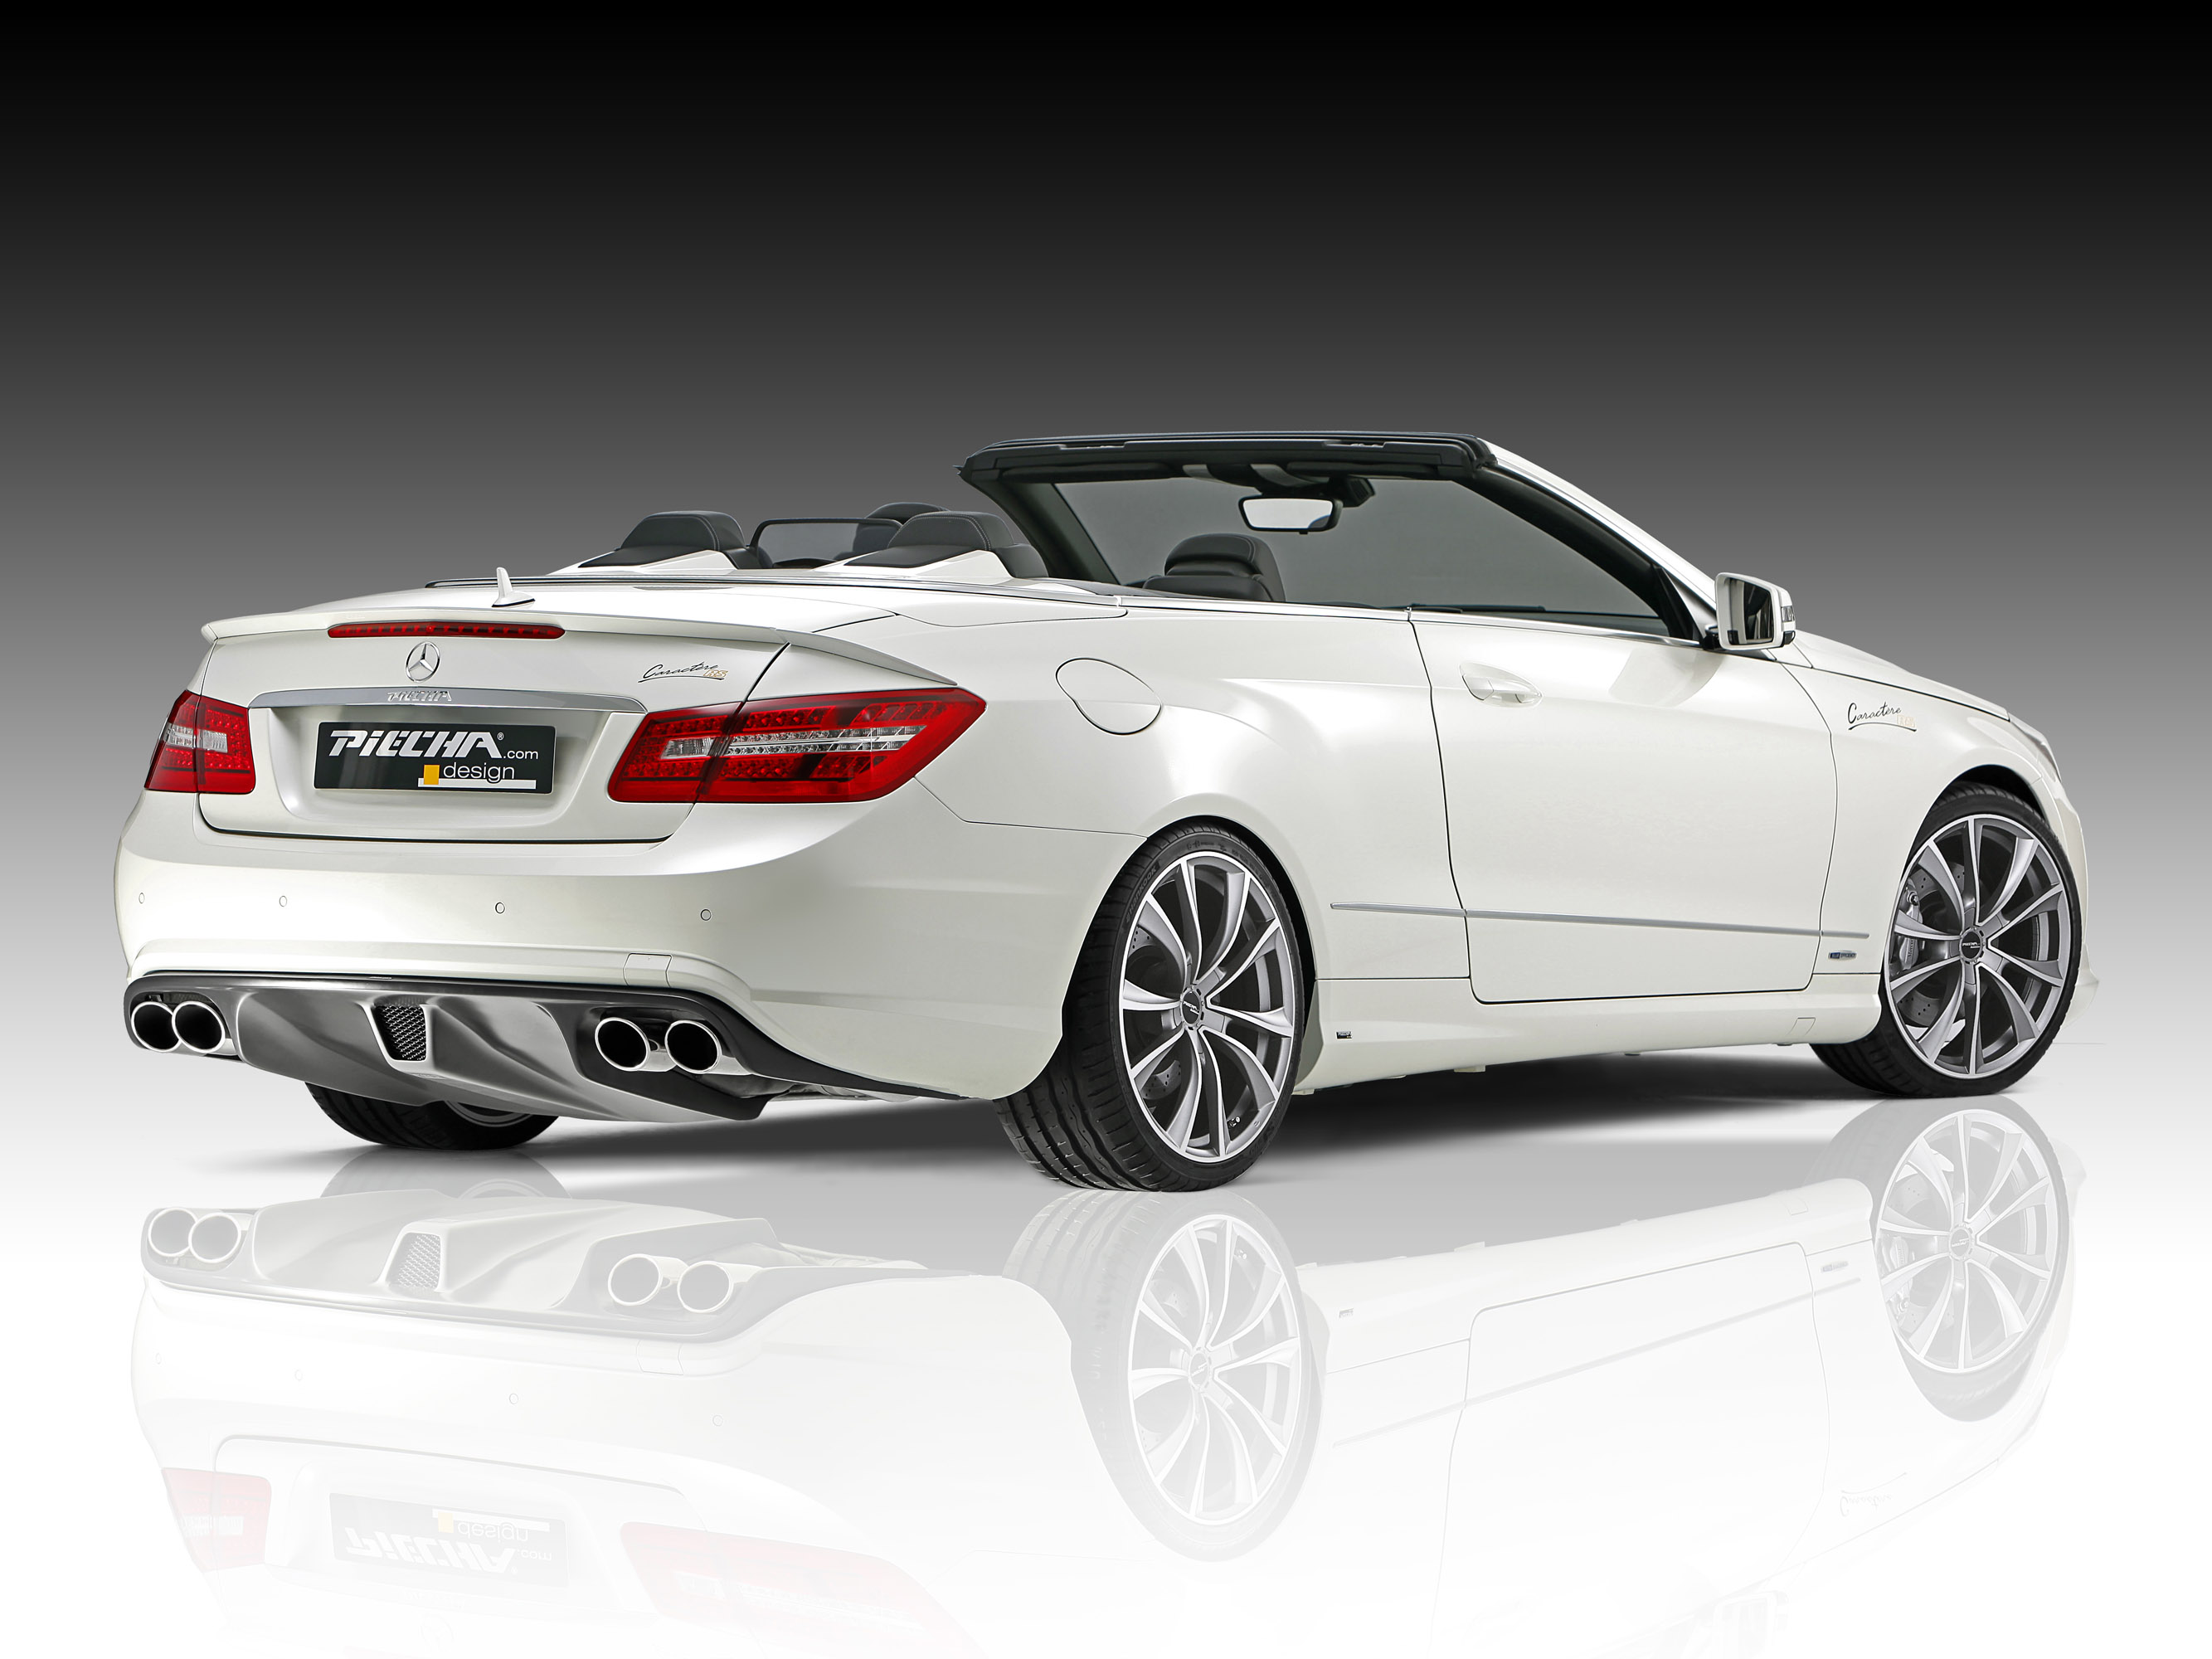 piecha class kit convertibles releases convertible mercedes news tuning for coupe e and auto benz design